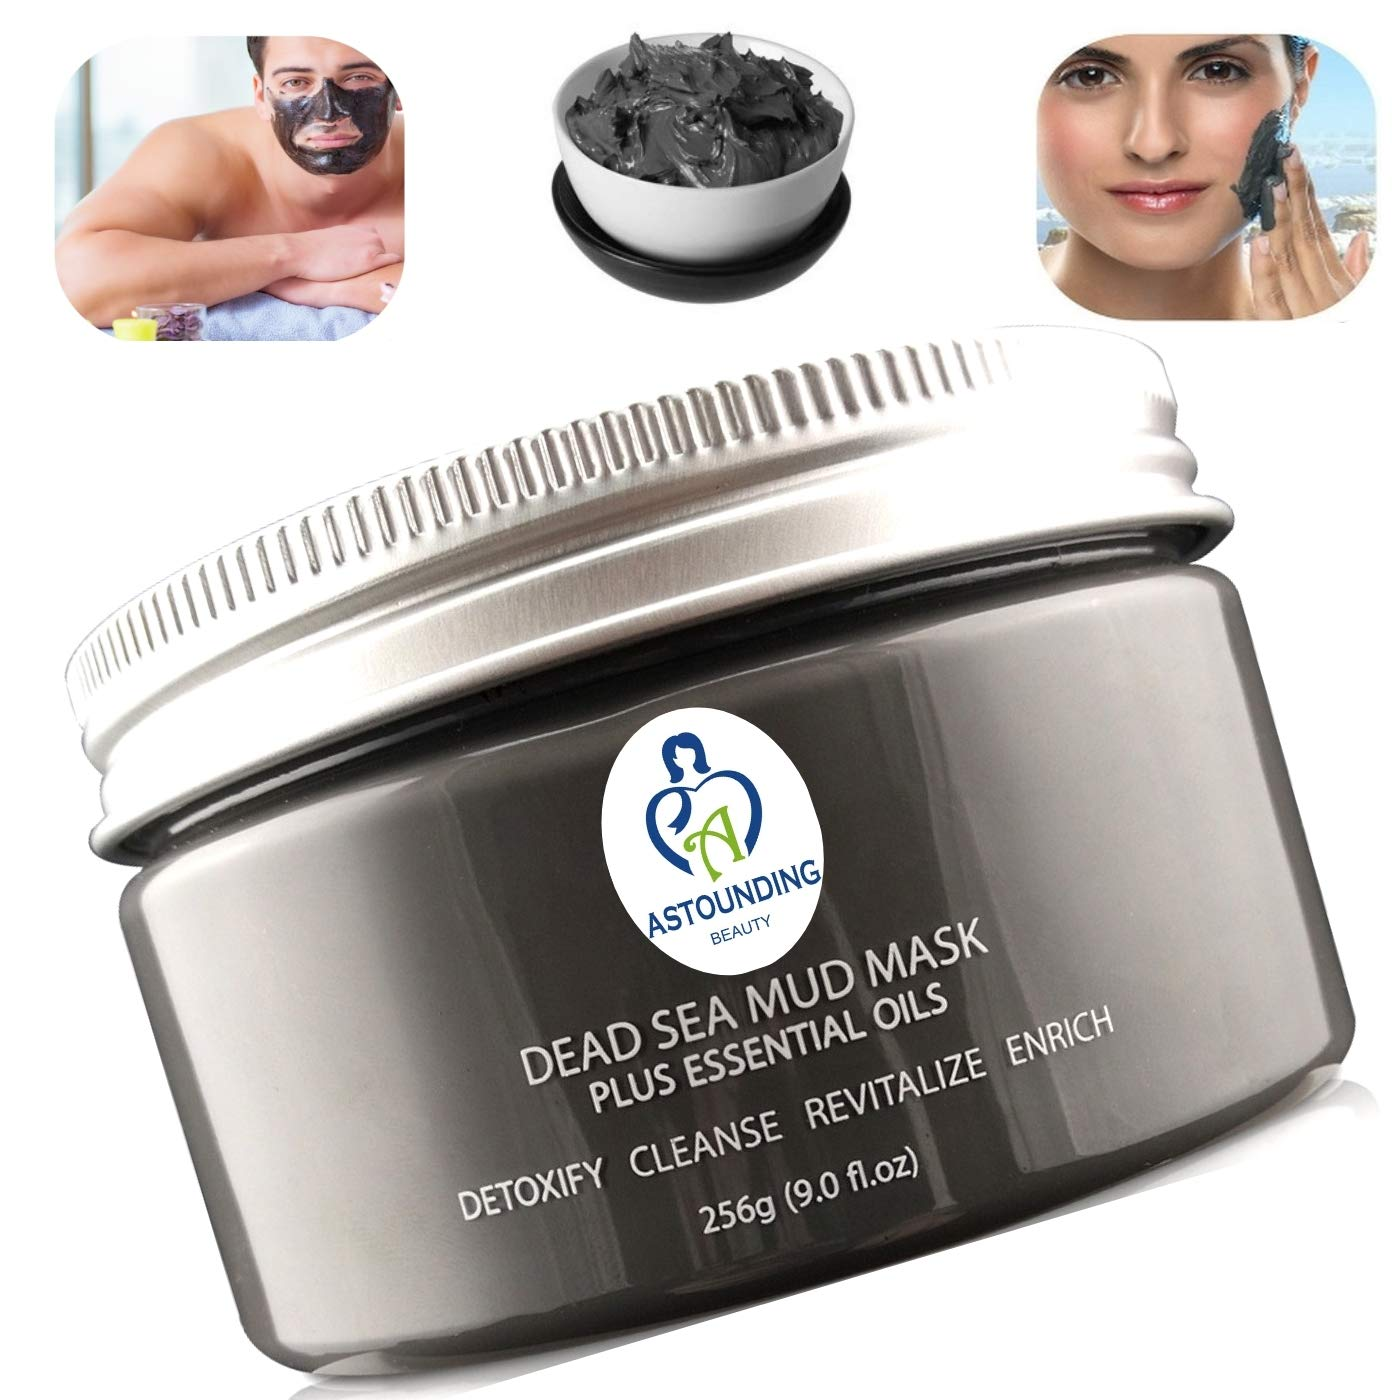 MOST AMAZING RESULTS Dead Sea Mud Mask+Essential Oils-9 oz-100% Natural Facial Body Skin Spa Treatment|Detox Cleanse Exfoliate Face|Reduce Minimizer Acne Pore Wrinkles Scar|Blackhead Remover Extractor Astounding Beauty Products